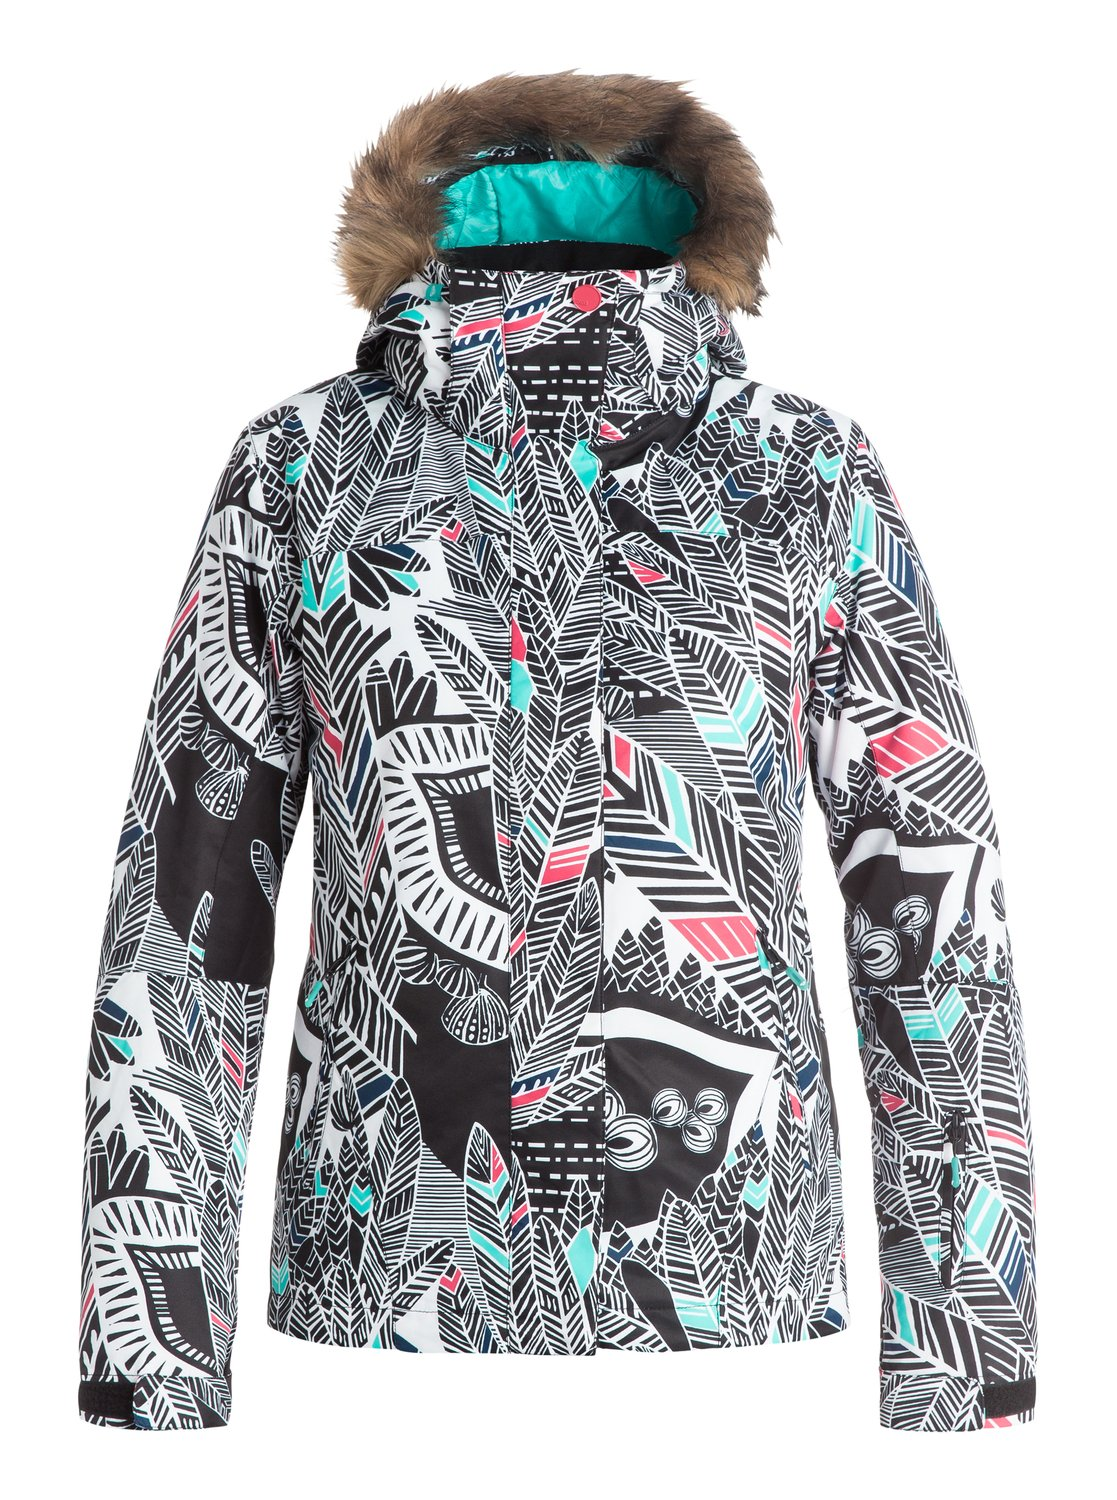 Сноубордическая куртка Jet SkiThe Jet Ski snow jacket for women comes complete with a sporty yet feminine slim fit and cosy removable fur. The bold fashionable prints have been woven with 10K ROXY DryFlight® technology waterproofing for reliable waterproof and breathable protection in a wide range of winter conditions. Warmflight® level 2 insulation provides low-bulk warmth and critically-taped seams offer extra protection in the most exposed areas.<br>